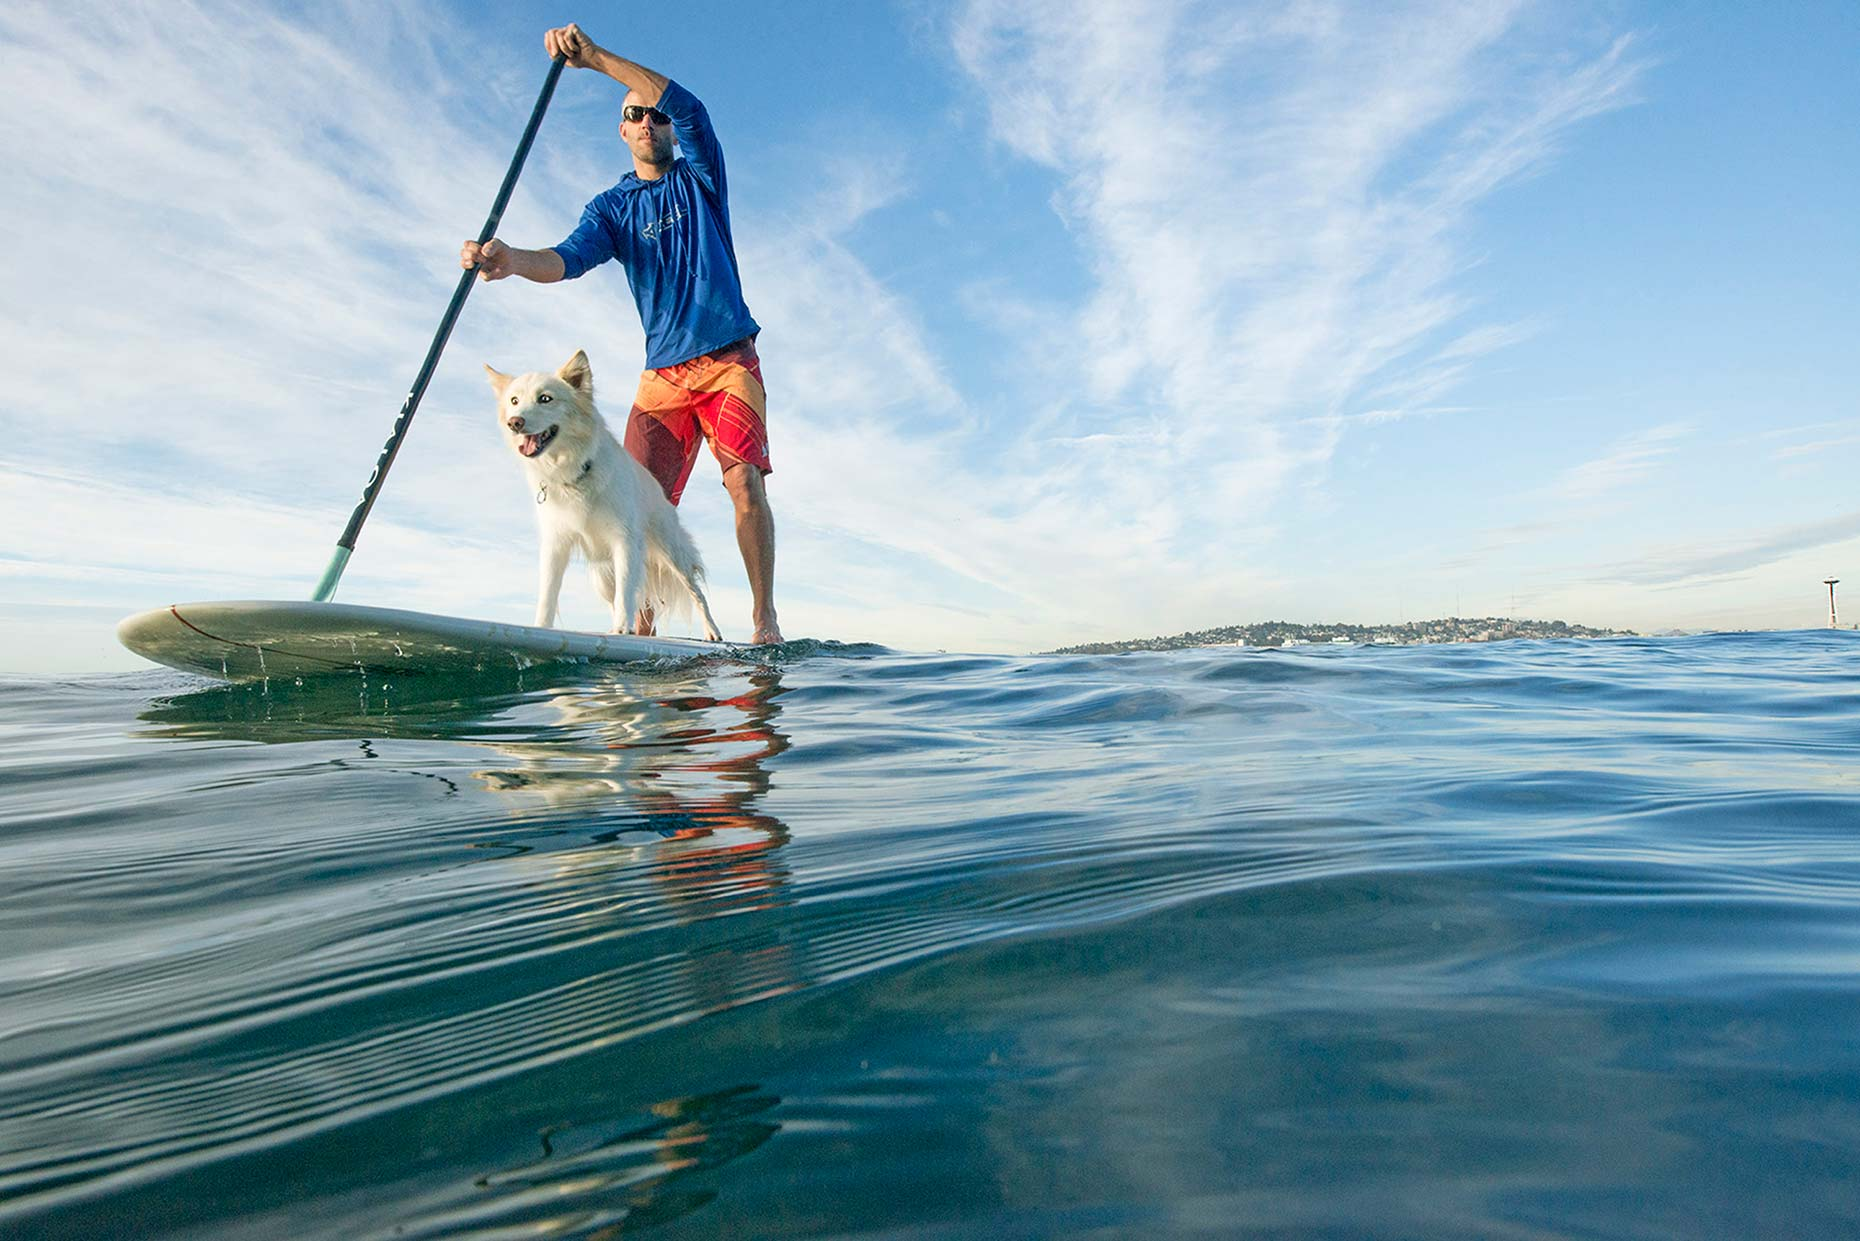 Ian-Coble-SUP-Paddling-Ocean-Beach-Dog